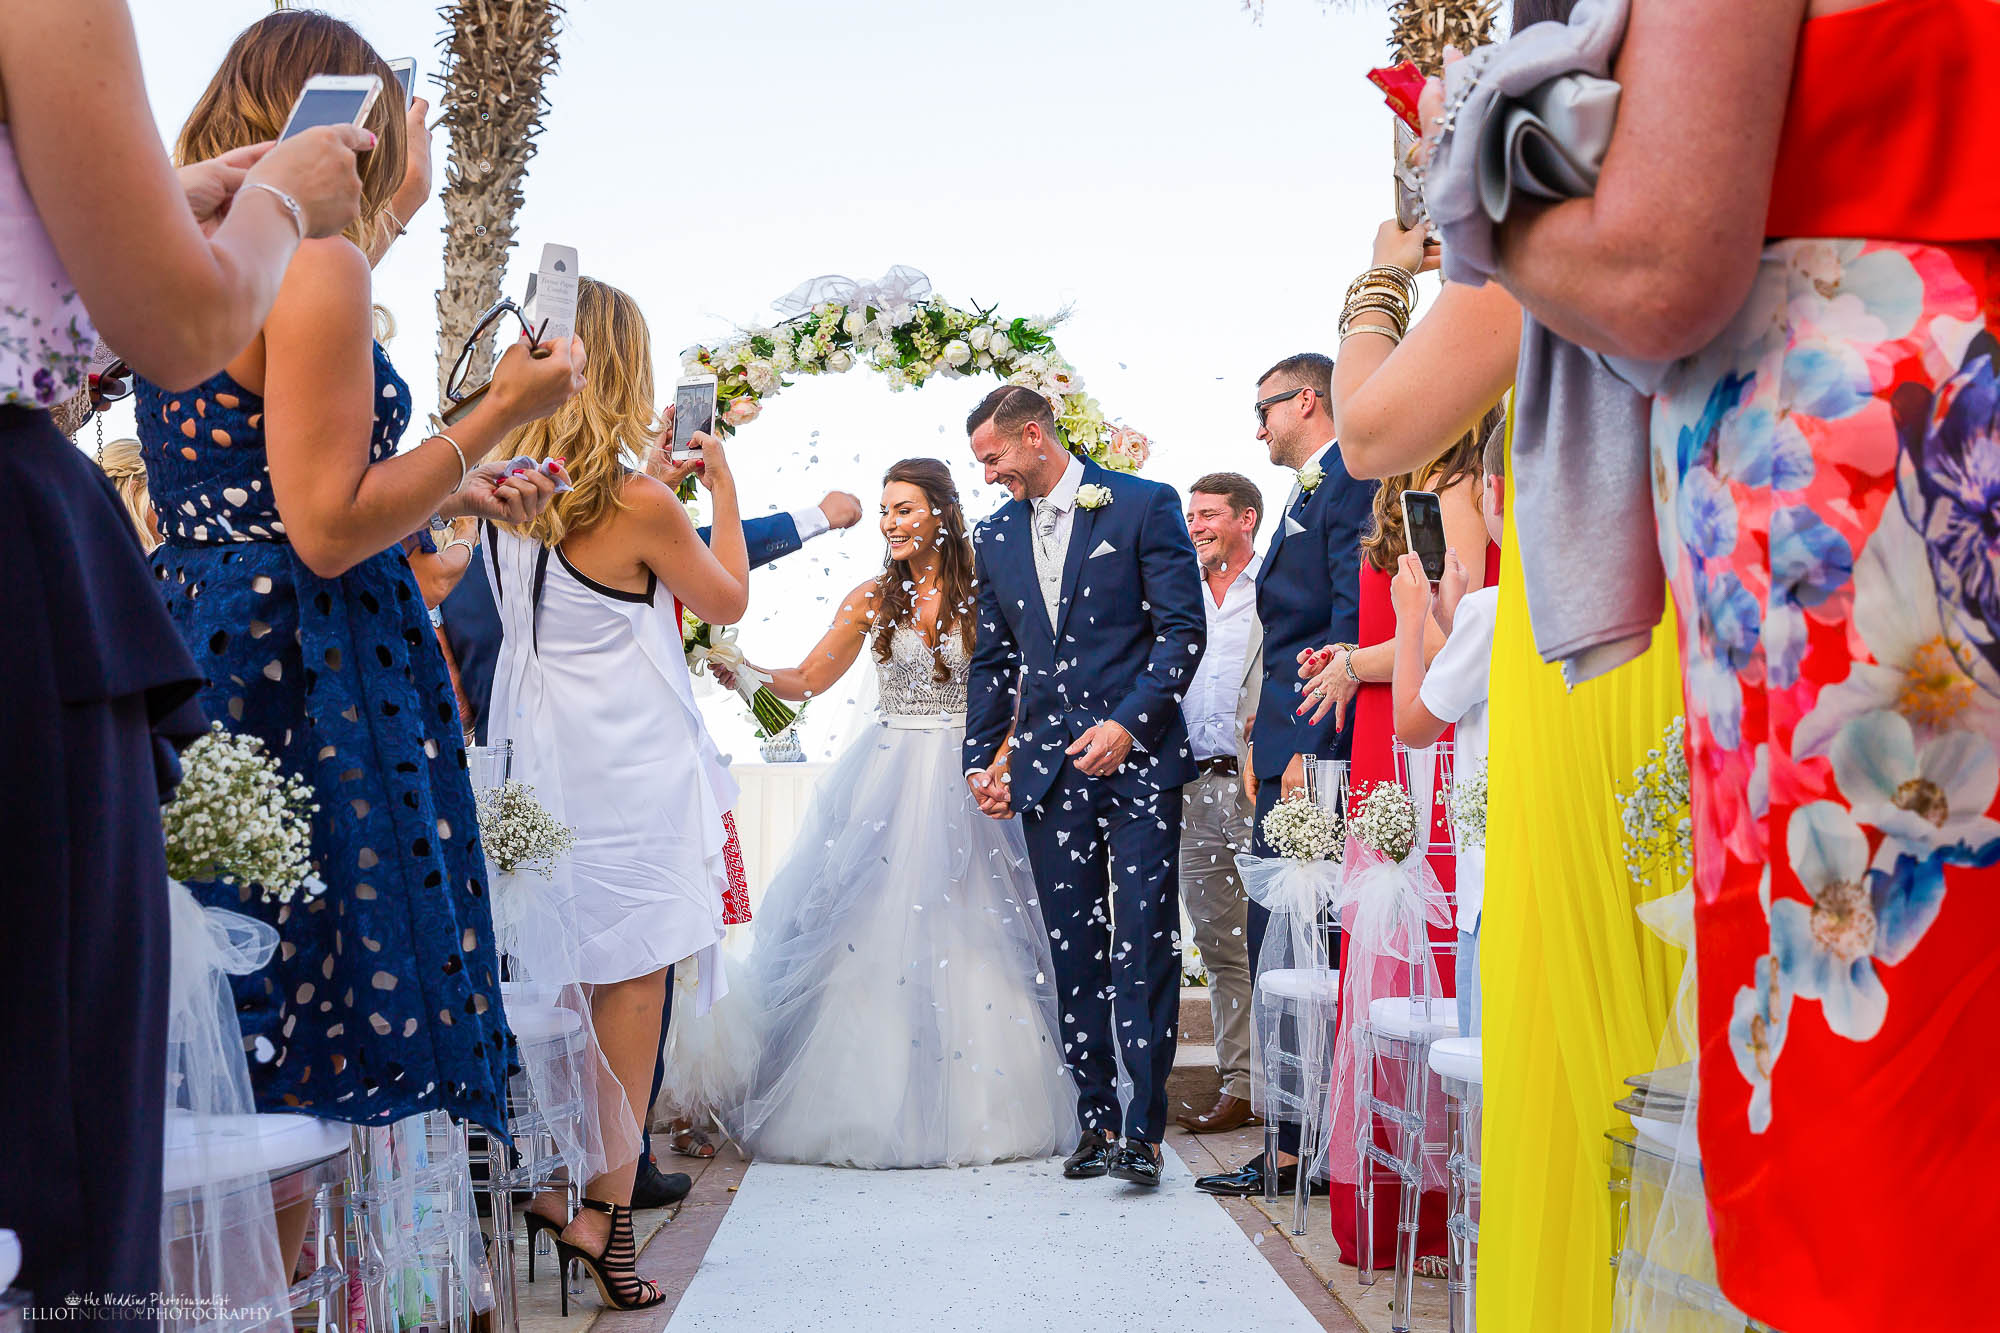 Bride in her blue wedding dress walks down the aisle with the groom under a shower of confetti. Wedding photography by North East photographer Elliot Nichol